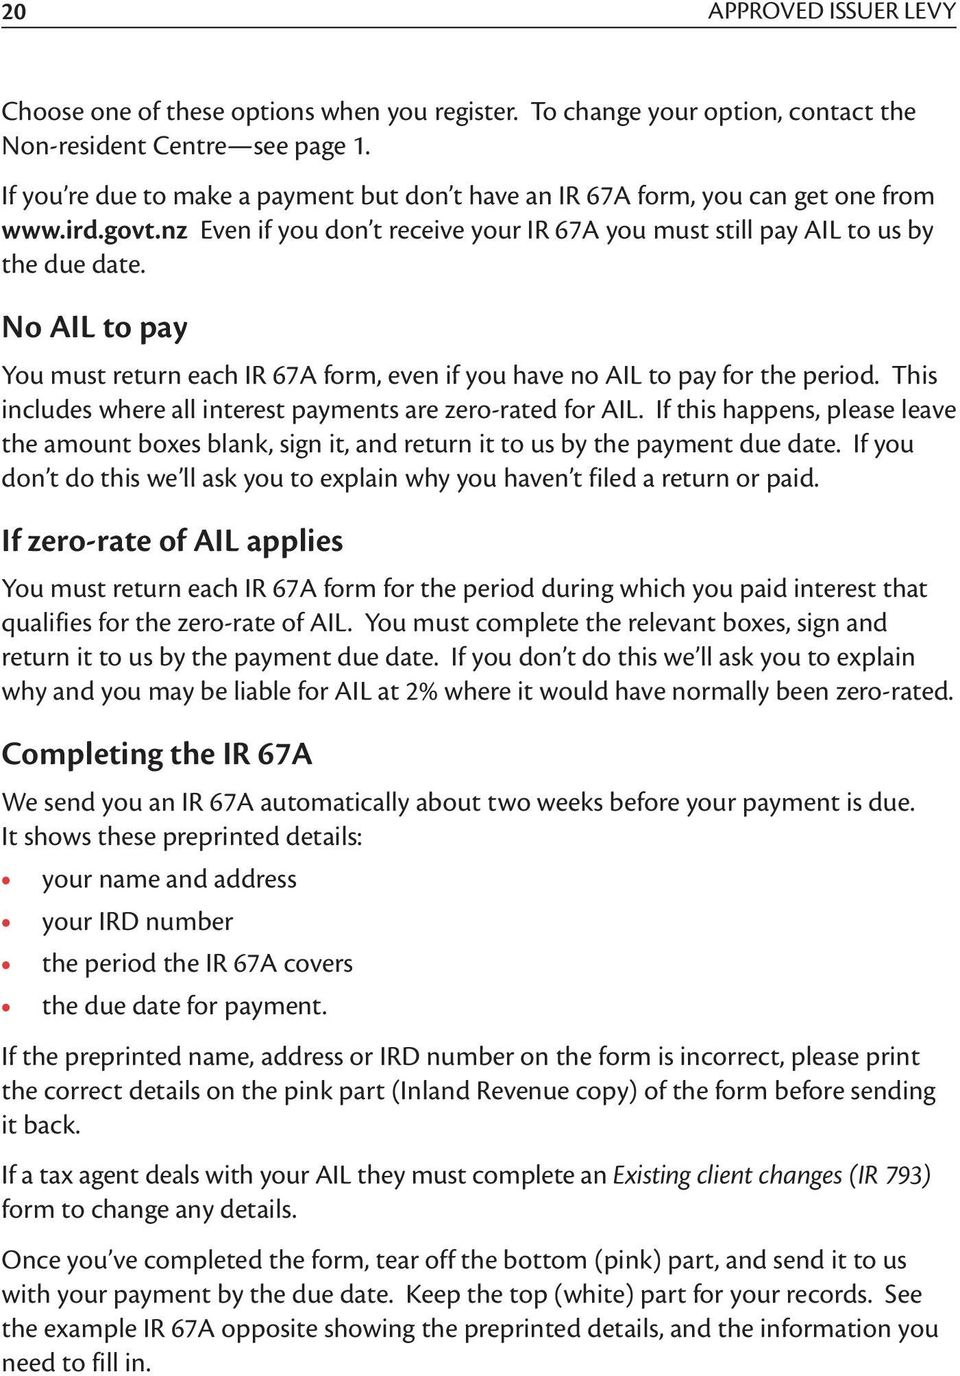 No AIL to pay You must return each IR 67A form, even if you have no AIL to pay for the period. This includes where all interest payments are zero-rated for AIL.